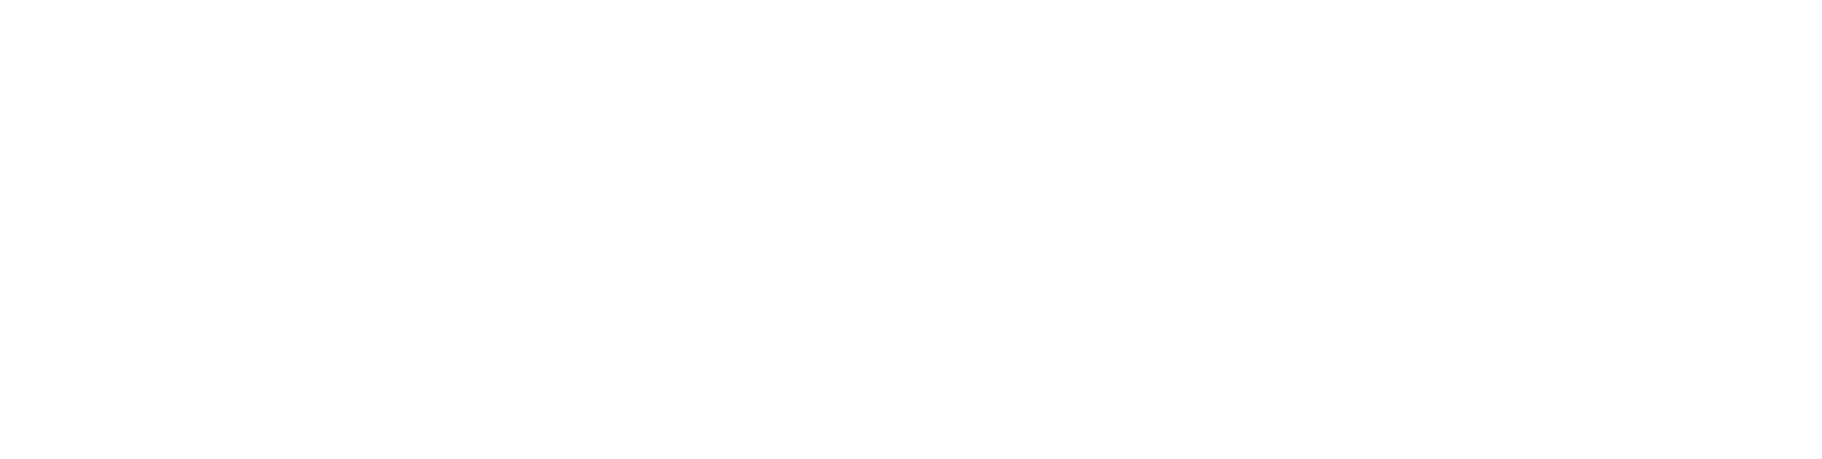 Association on Aging with Developmental Disabilities